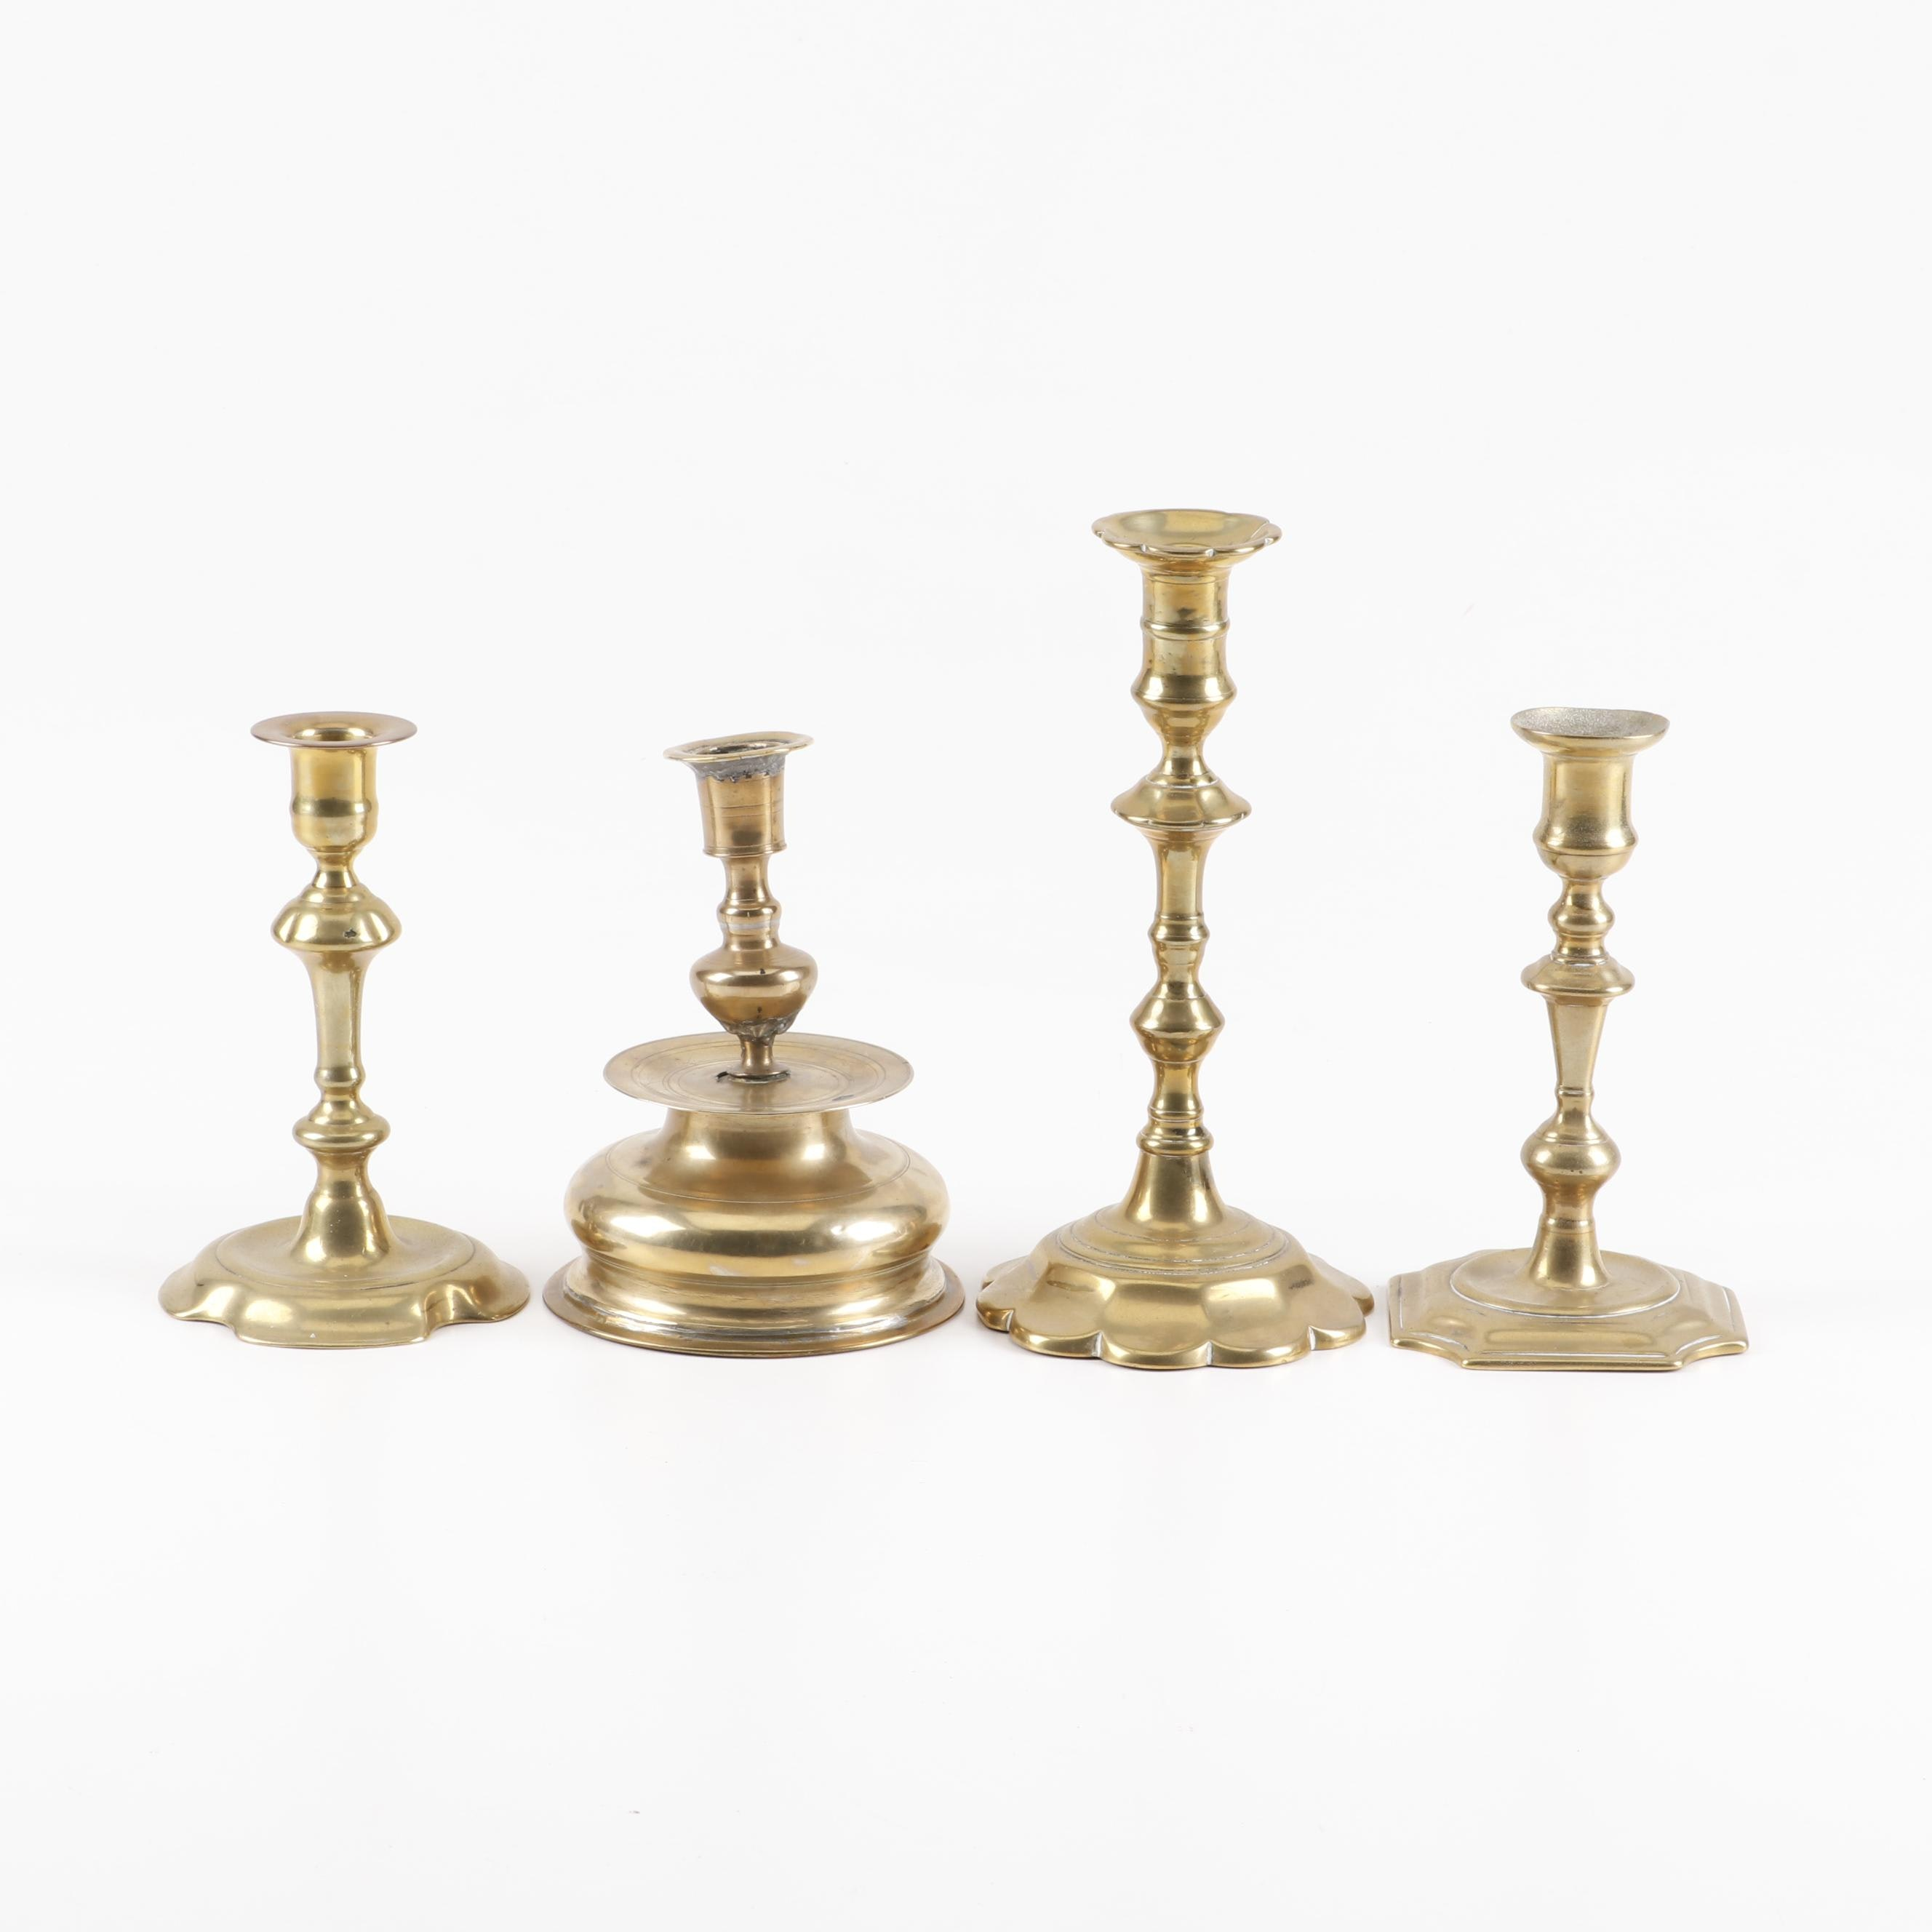 Unmatched Brass Candlesticks, Late 18th to Mid-19th Century